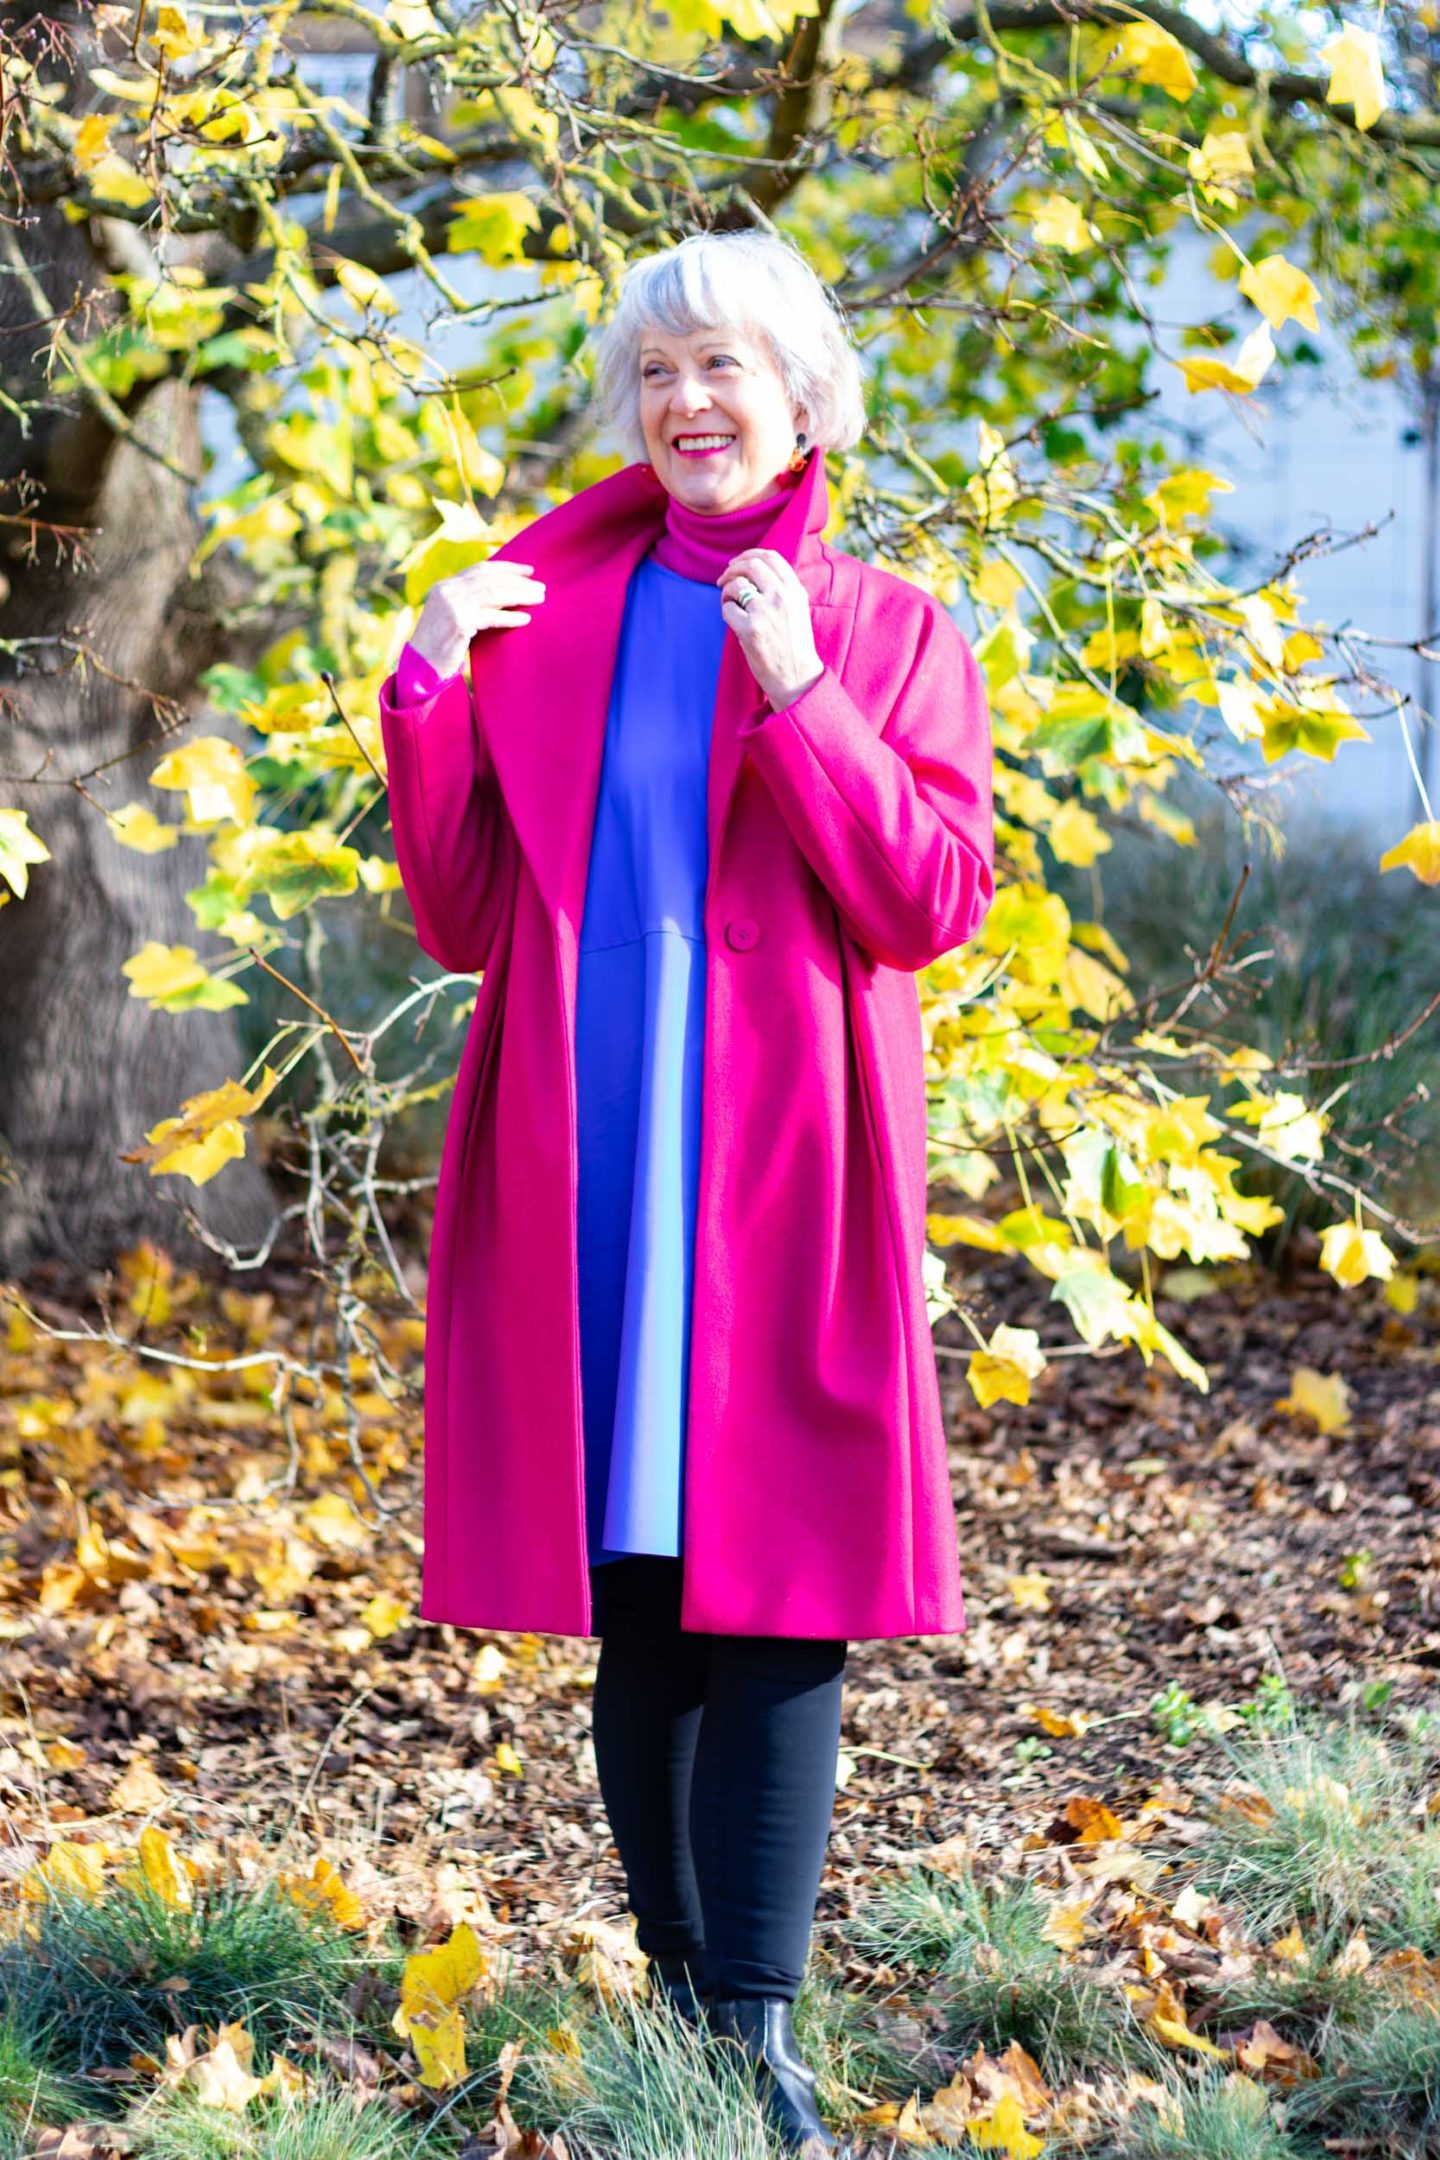 Bright pink coat and blue dress